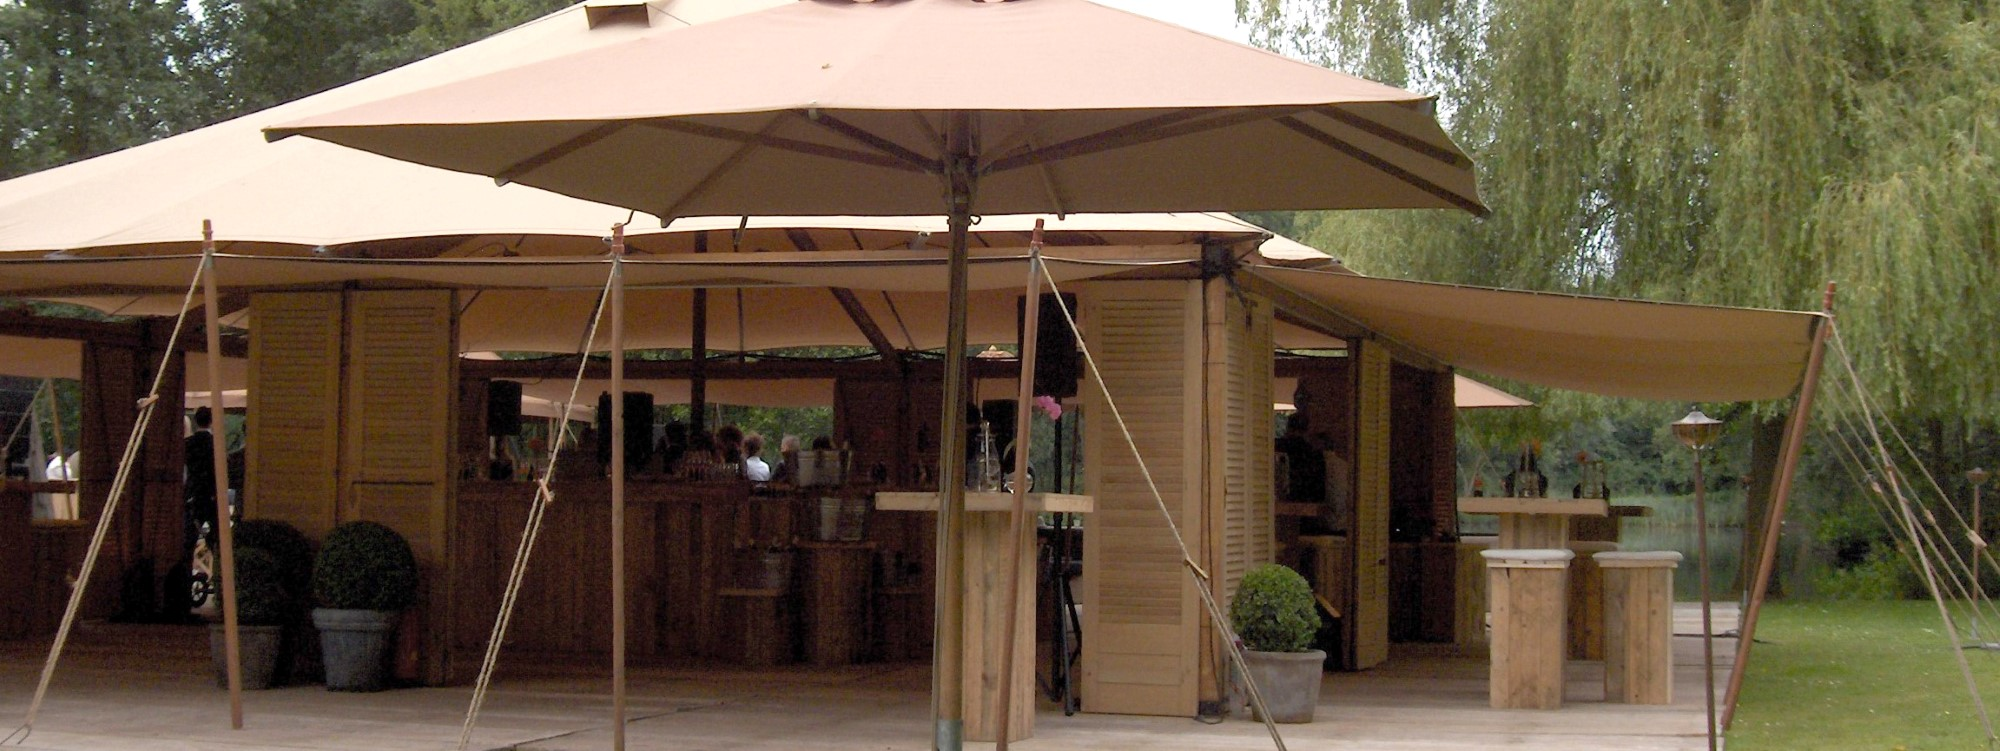 beach house the tent companythe tent company. Black Bedroom Furniture Sets. Home Design Ideas